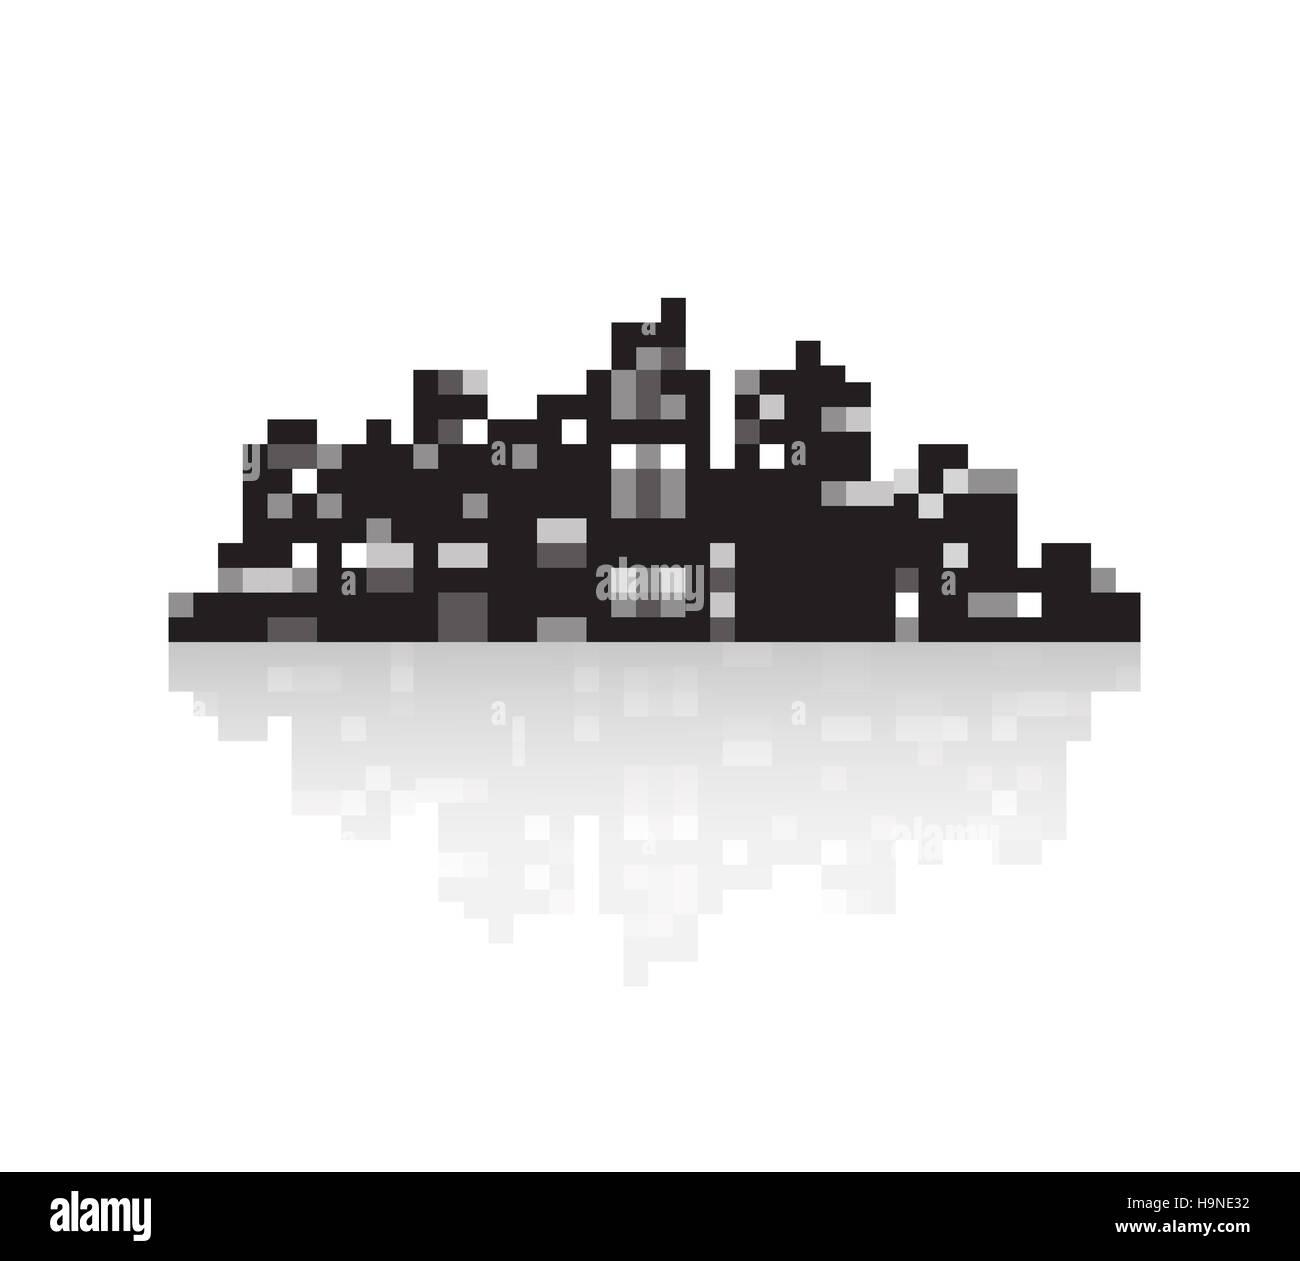 Silhouette of a modern city in style pixel art - Stock Image